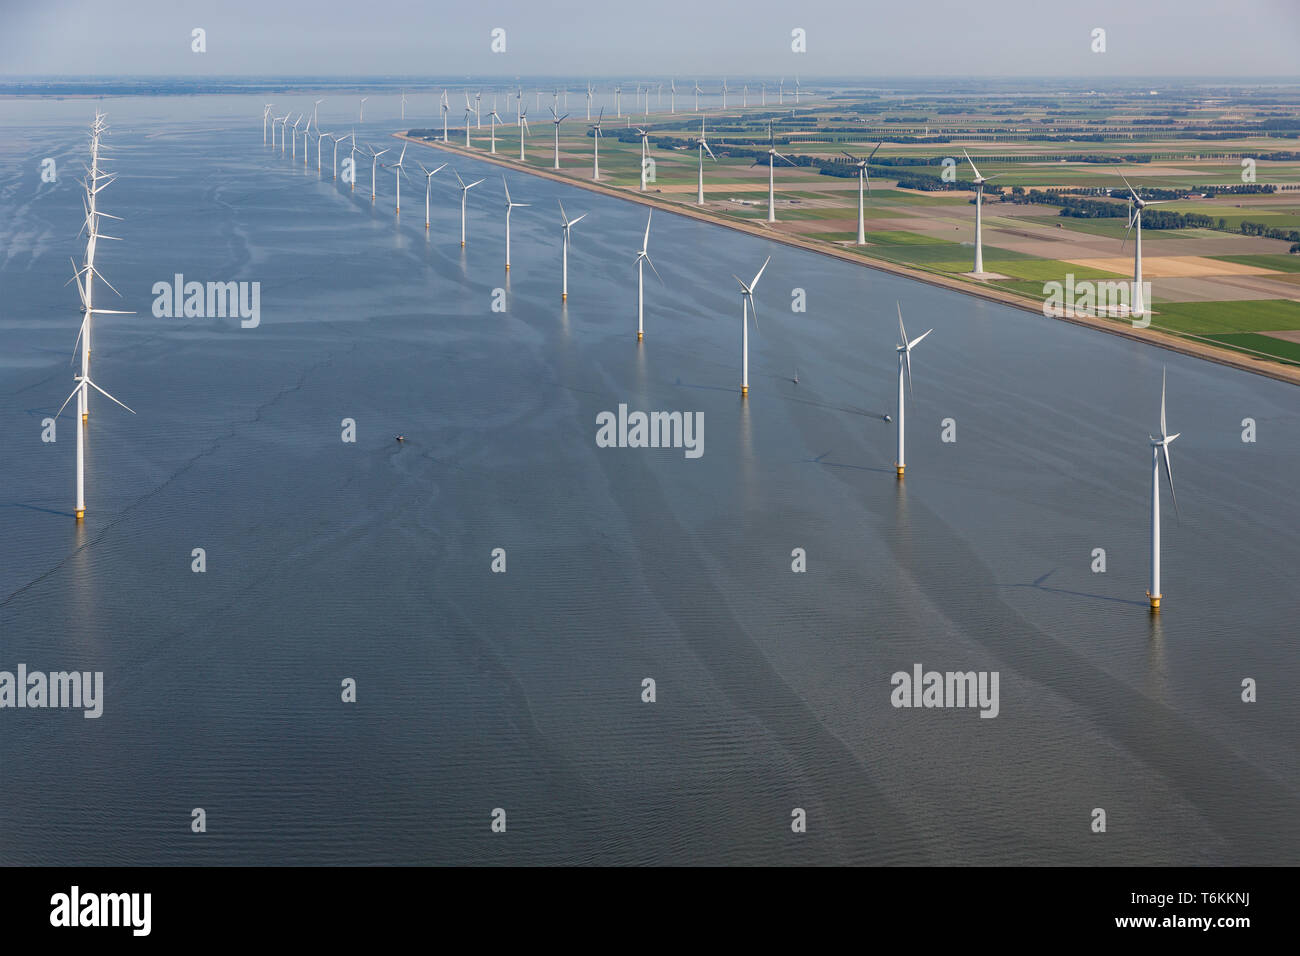 Aerial view Dutch sea with offshore wind turbines along coast Stock Photo